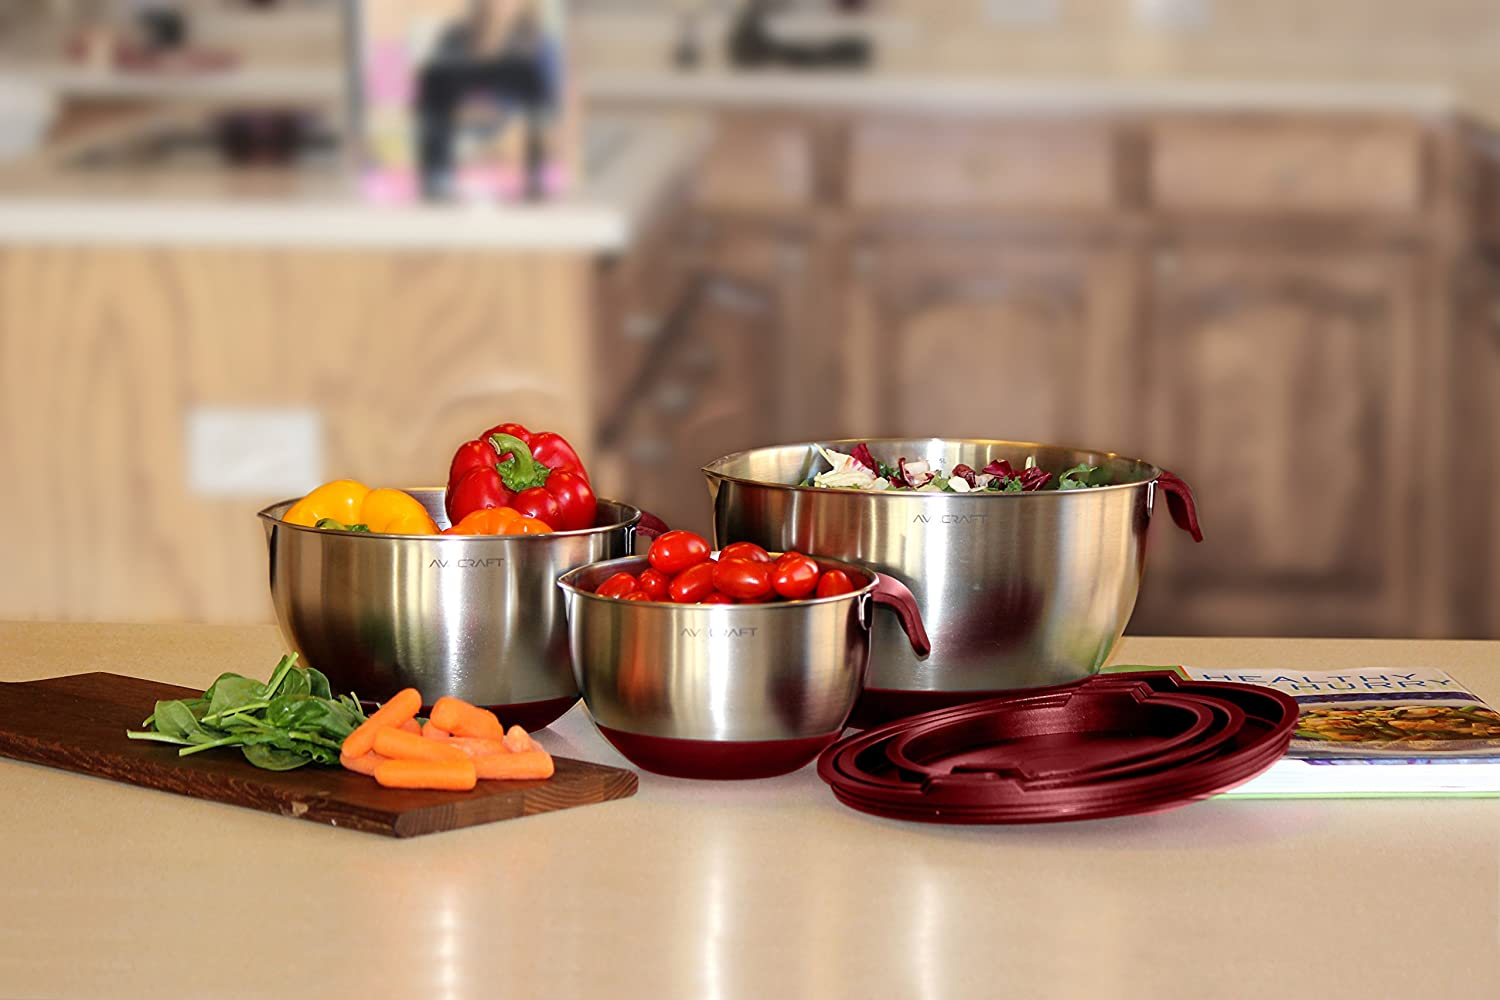 non slip silicone base bowls with Handle Home Essentials Cooking Bowls, Red Mixing Bowl Set with Pour Spouts /& Measurement Marks AVACRAFT 18//10 Top Rated Stainless Steel Mixing Bowls with Lids